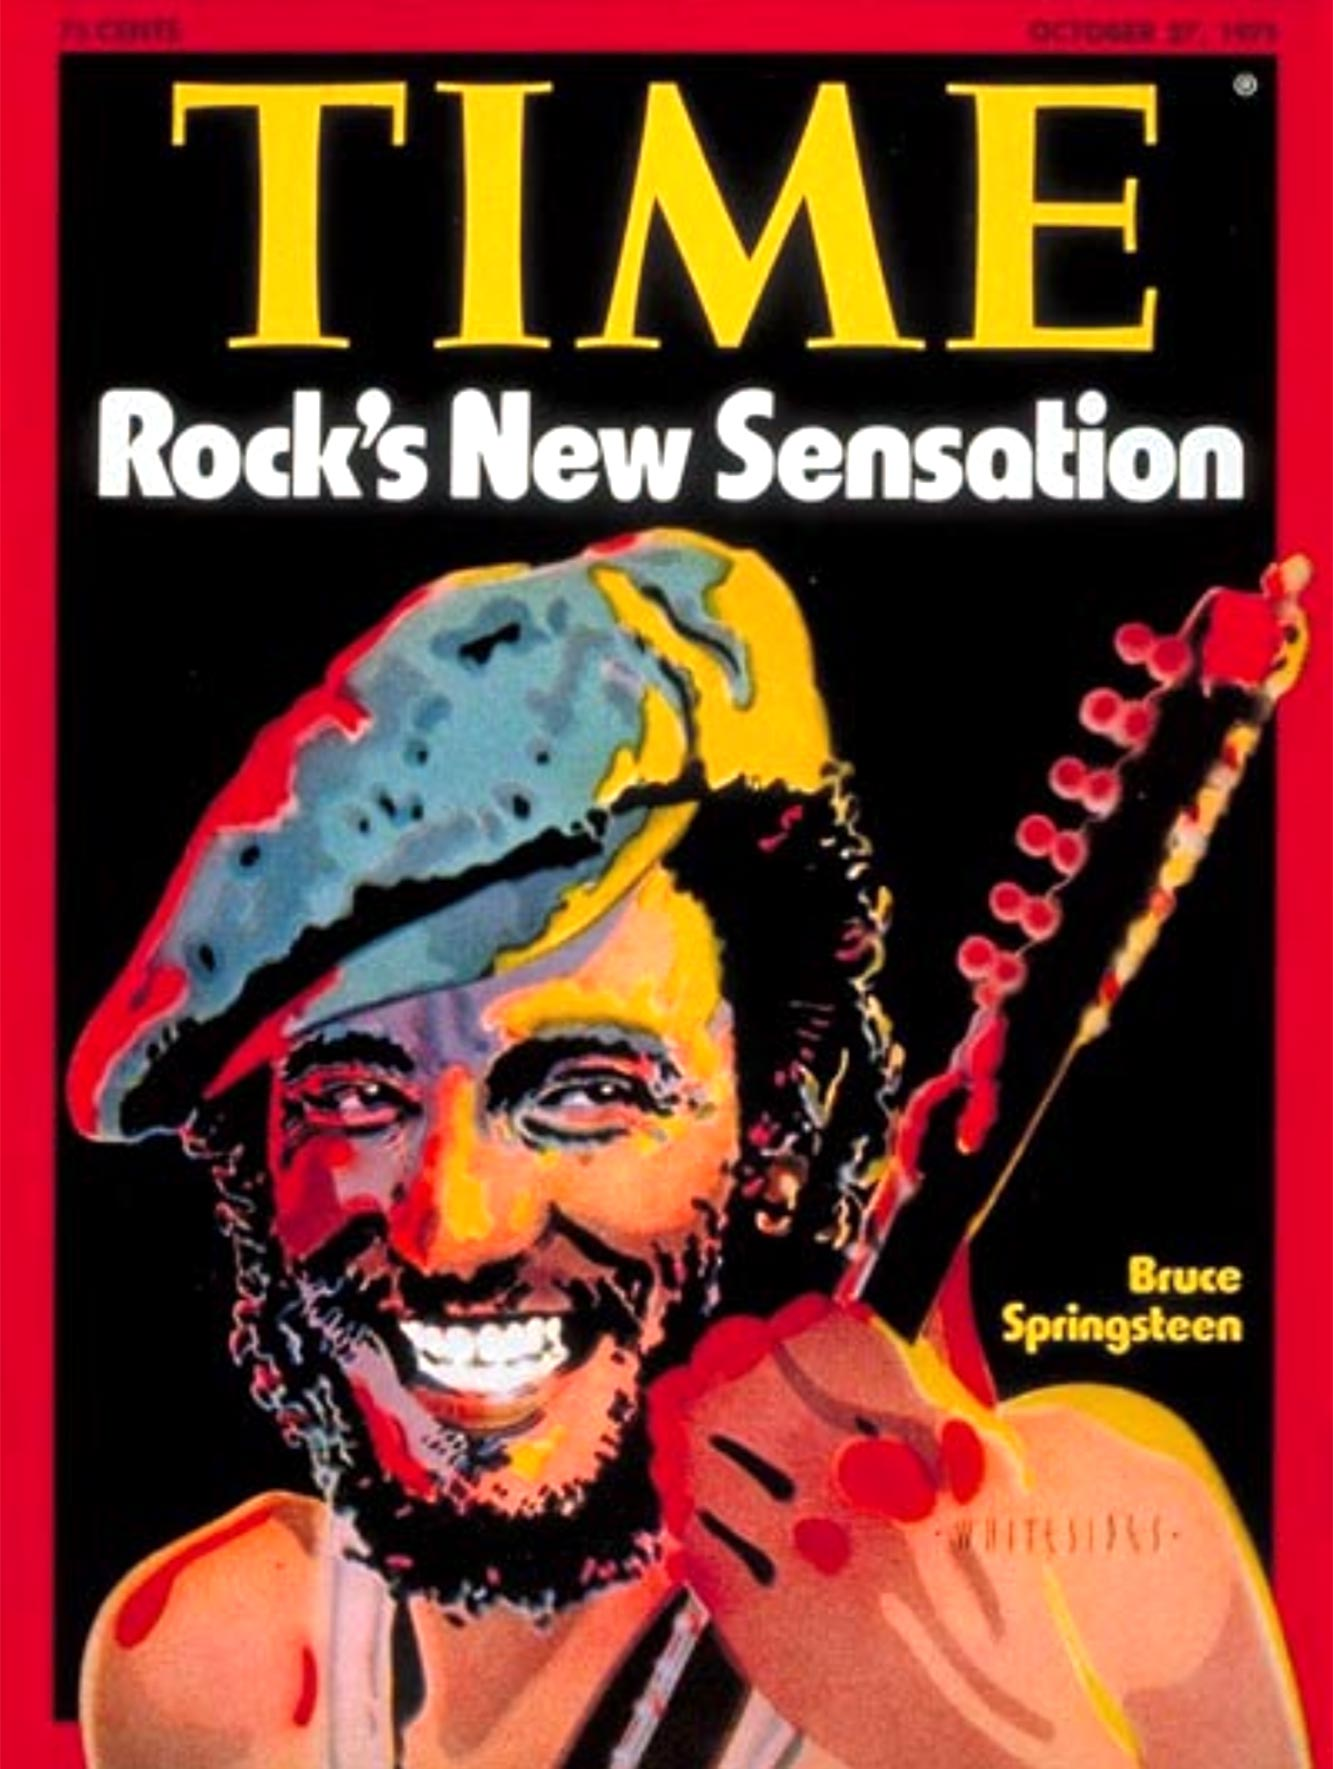 Bruce Springsteen 1975 Time Magazine cover